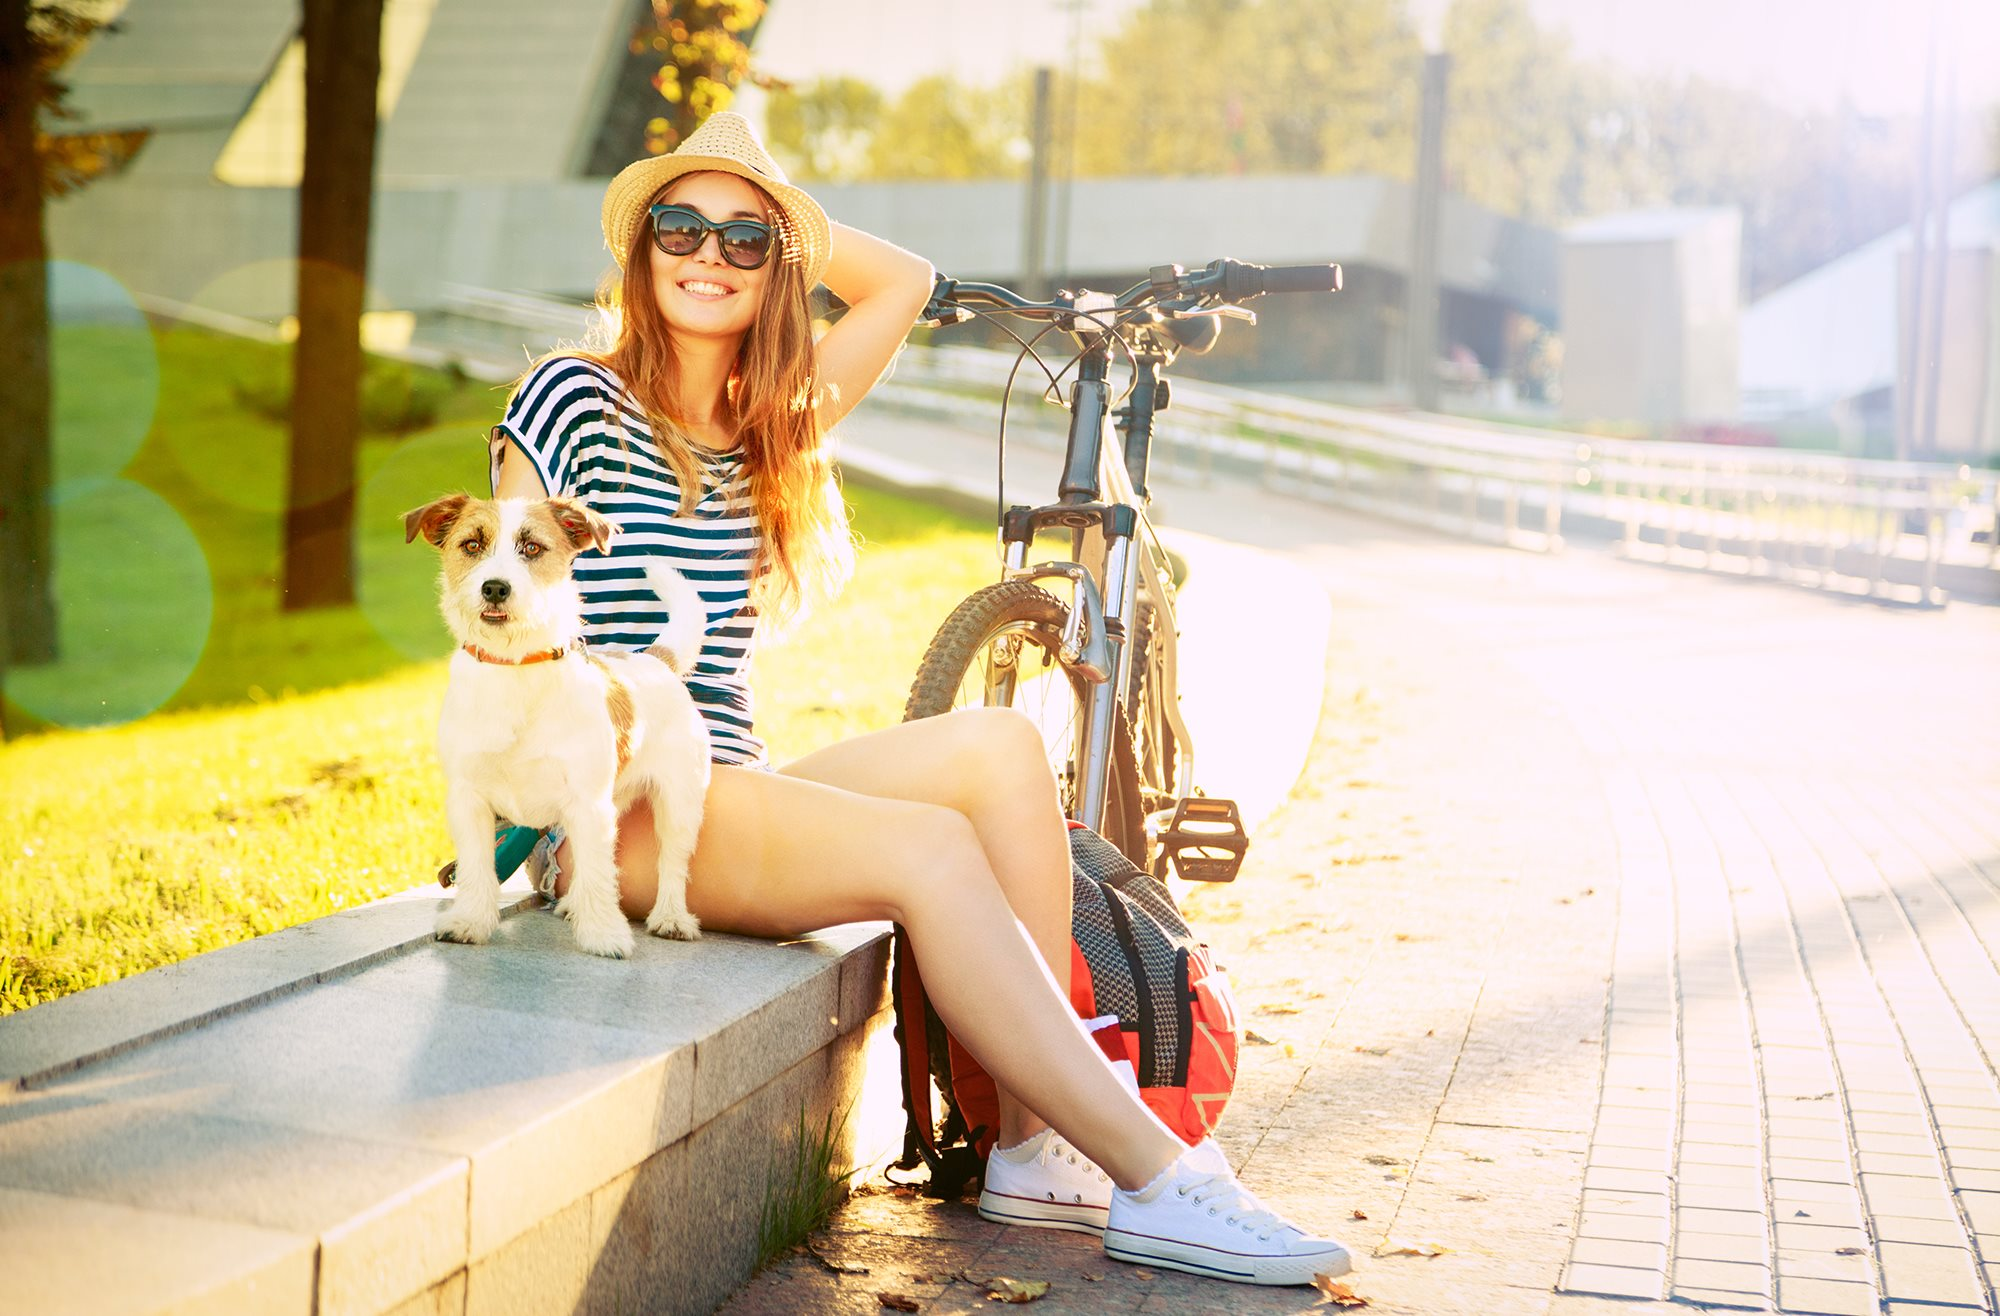 Girl Dog Bike Stock